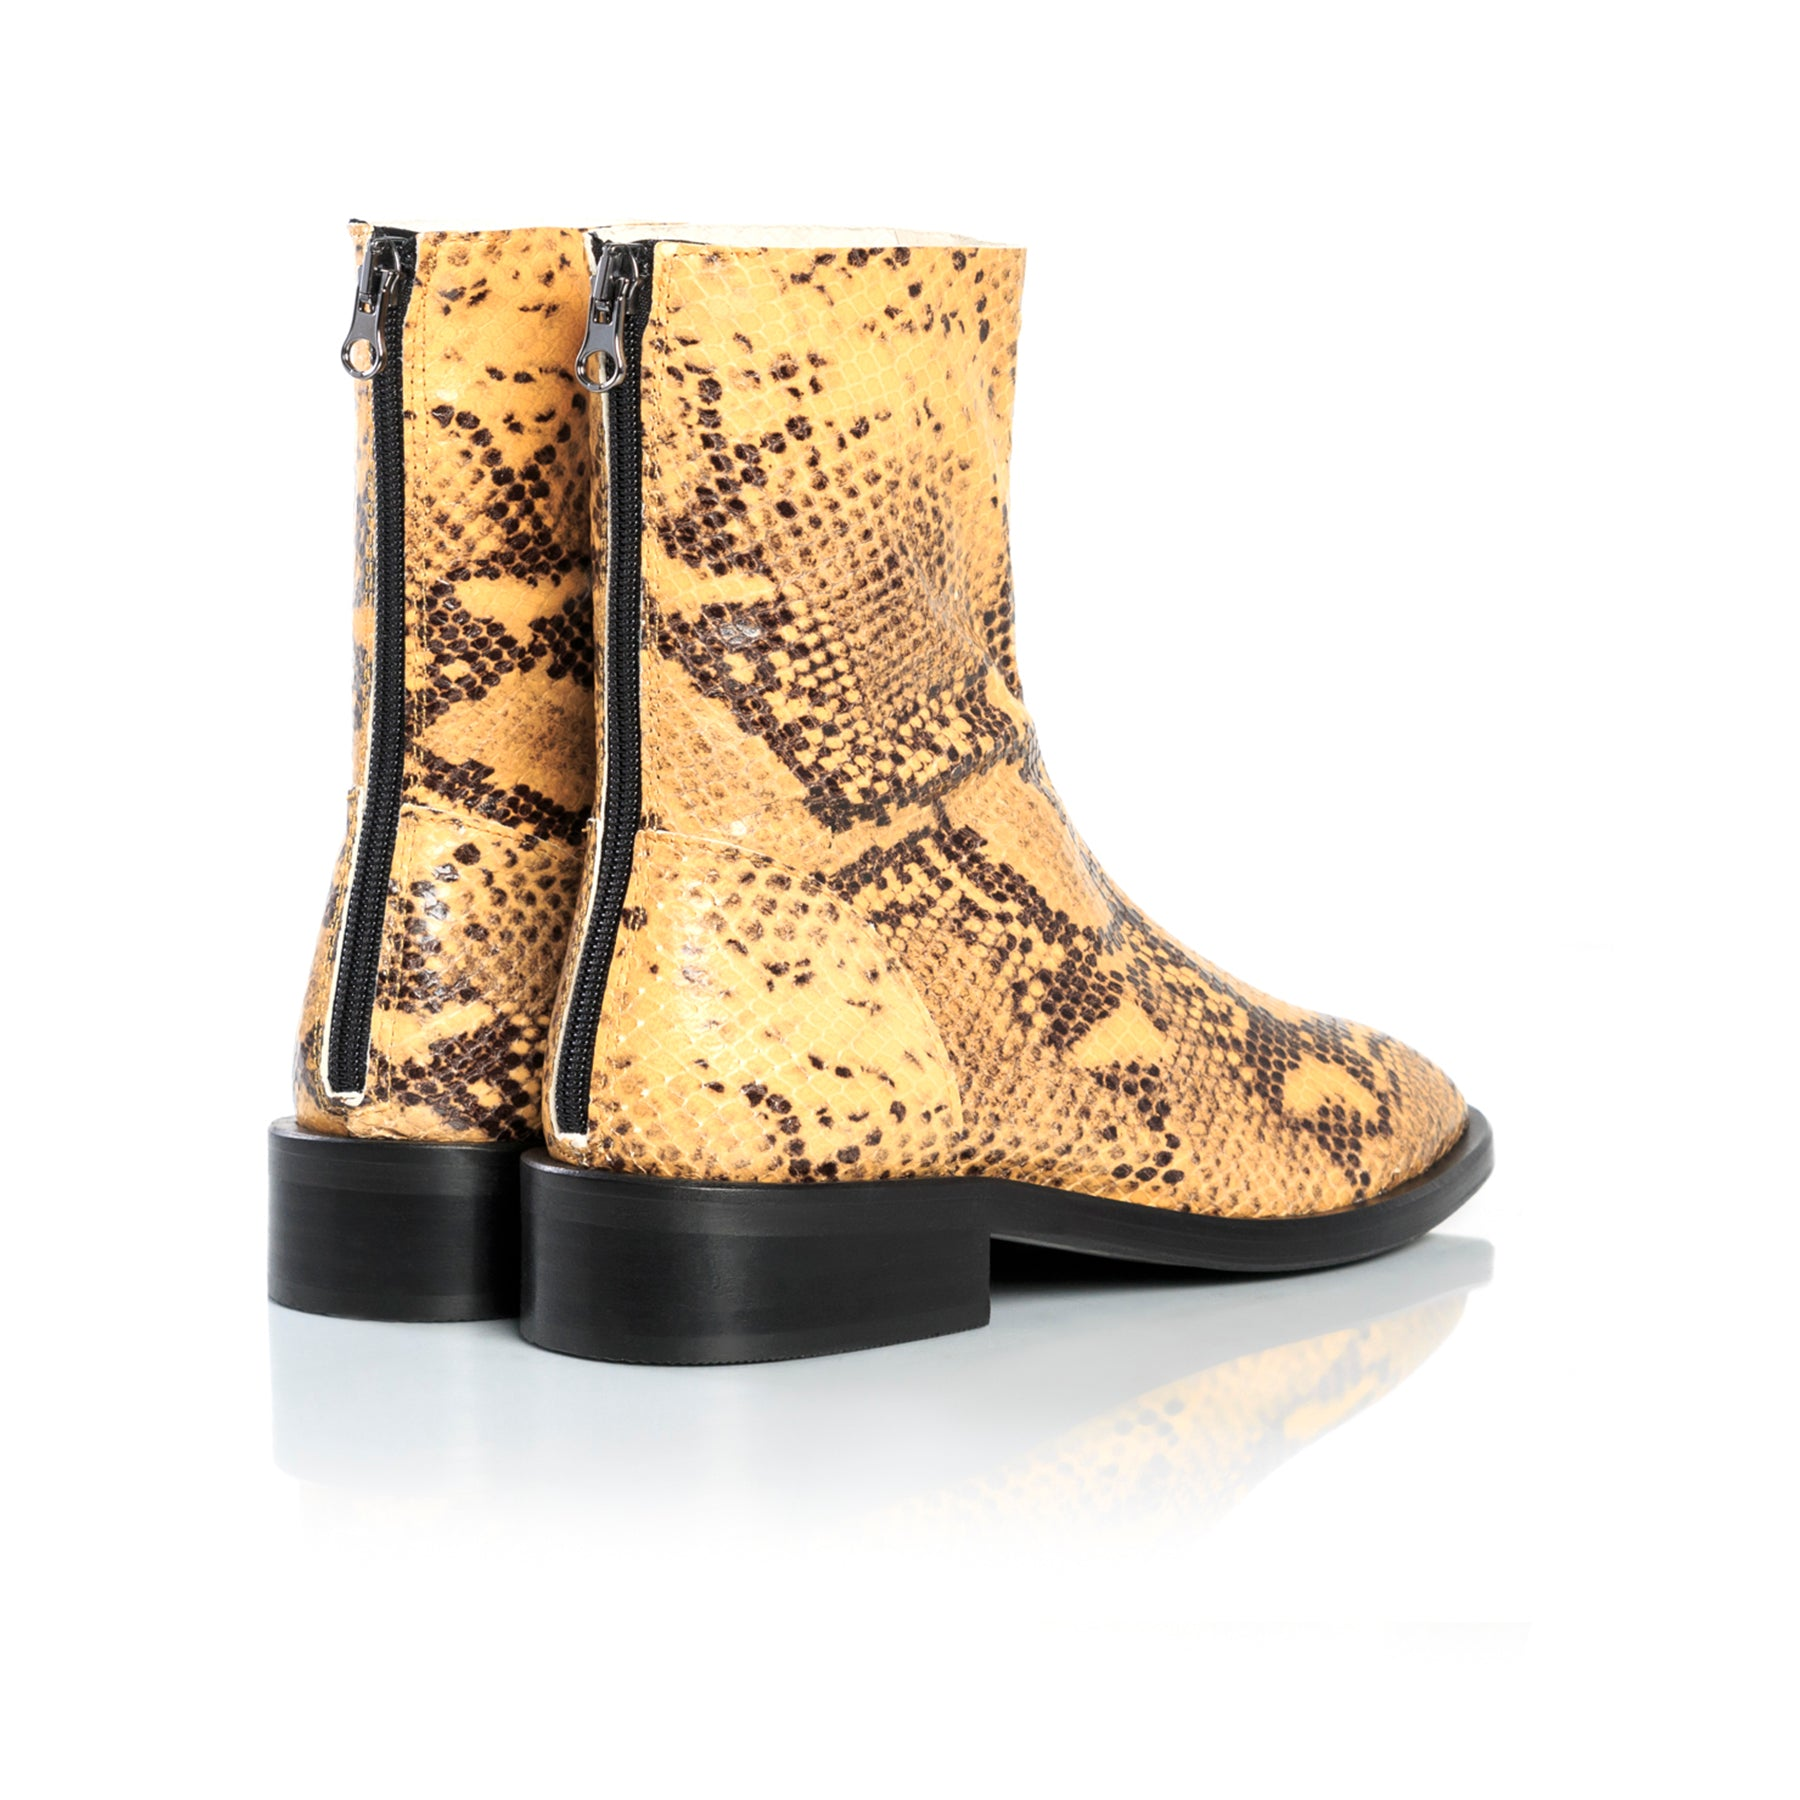 Dalton Mustard Snake Ankle Boots